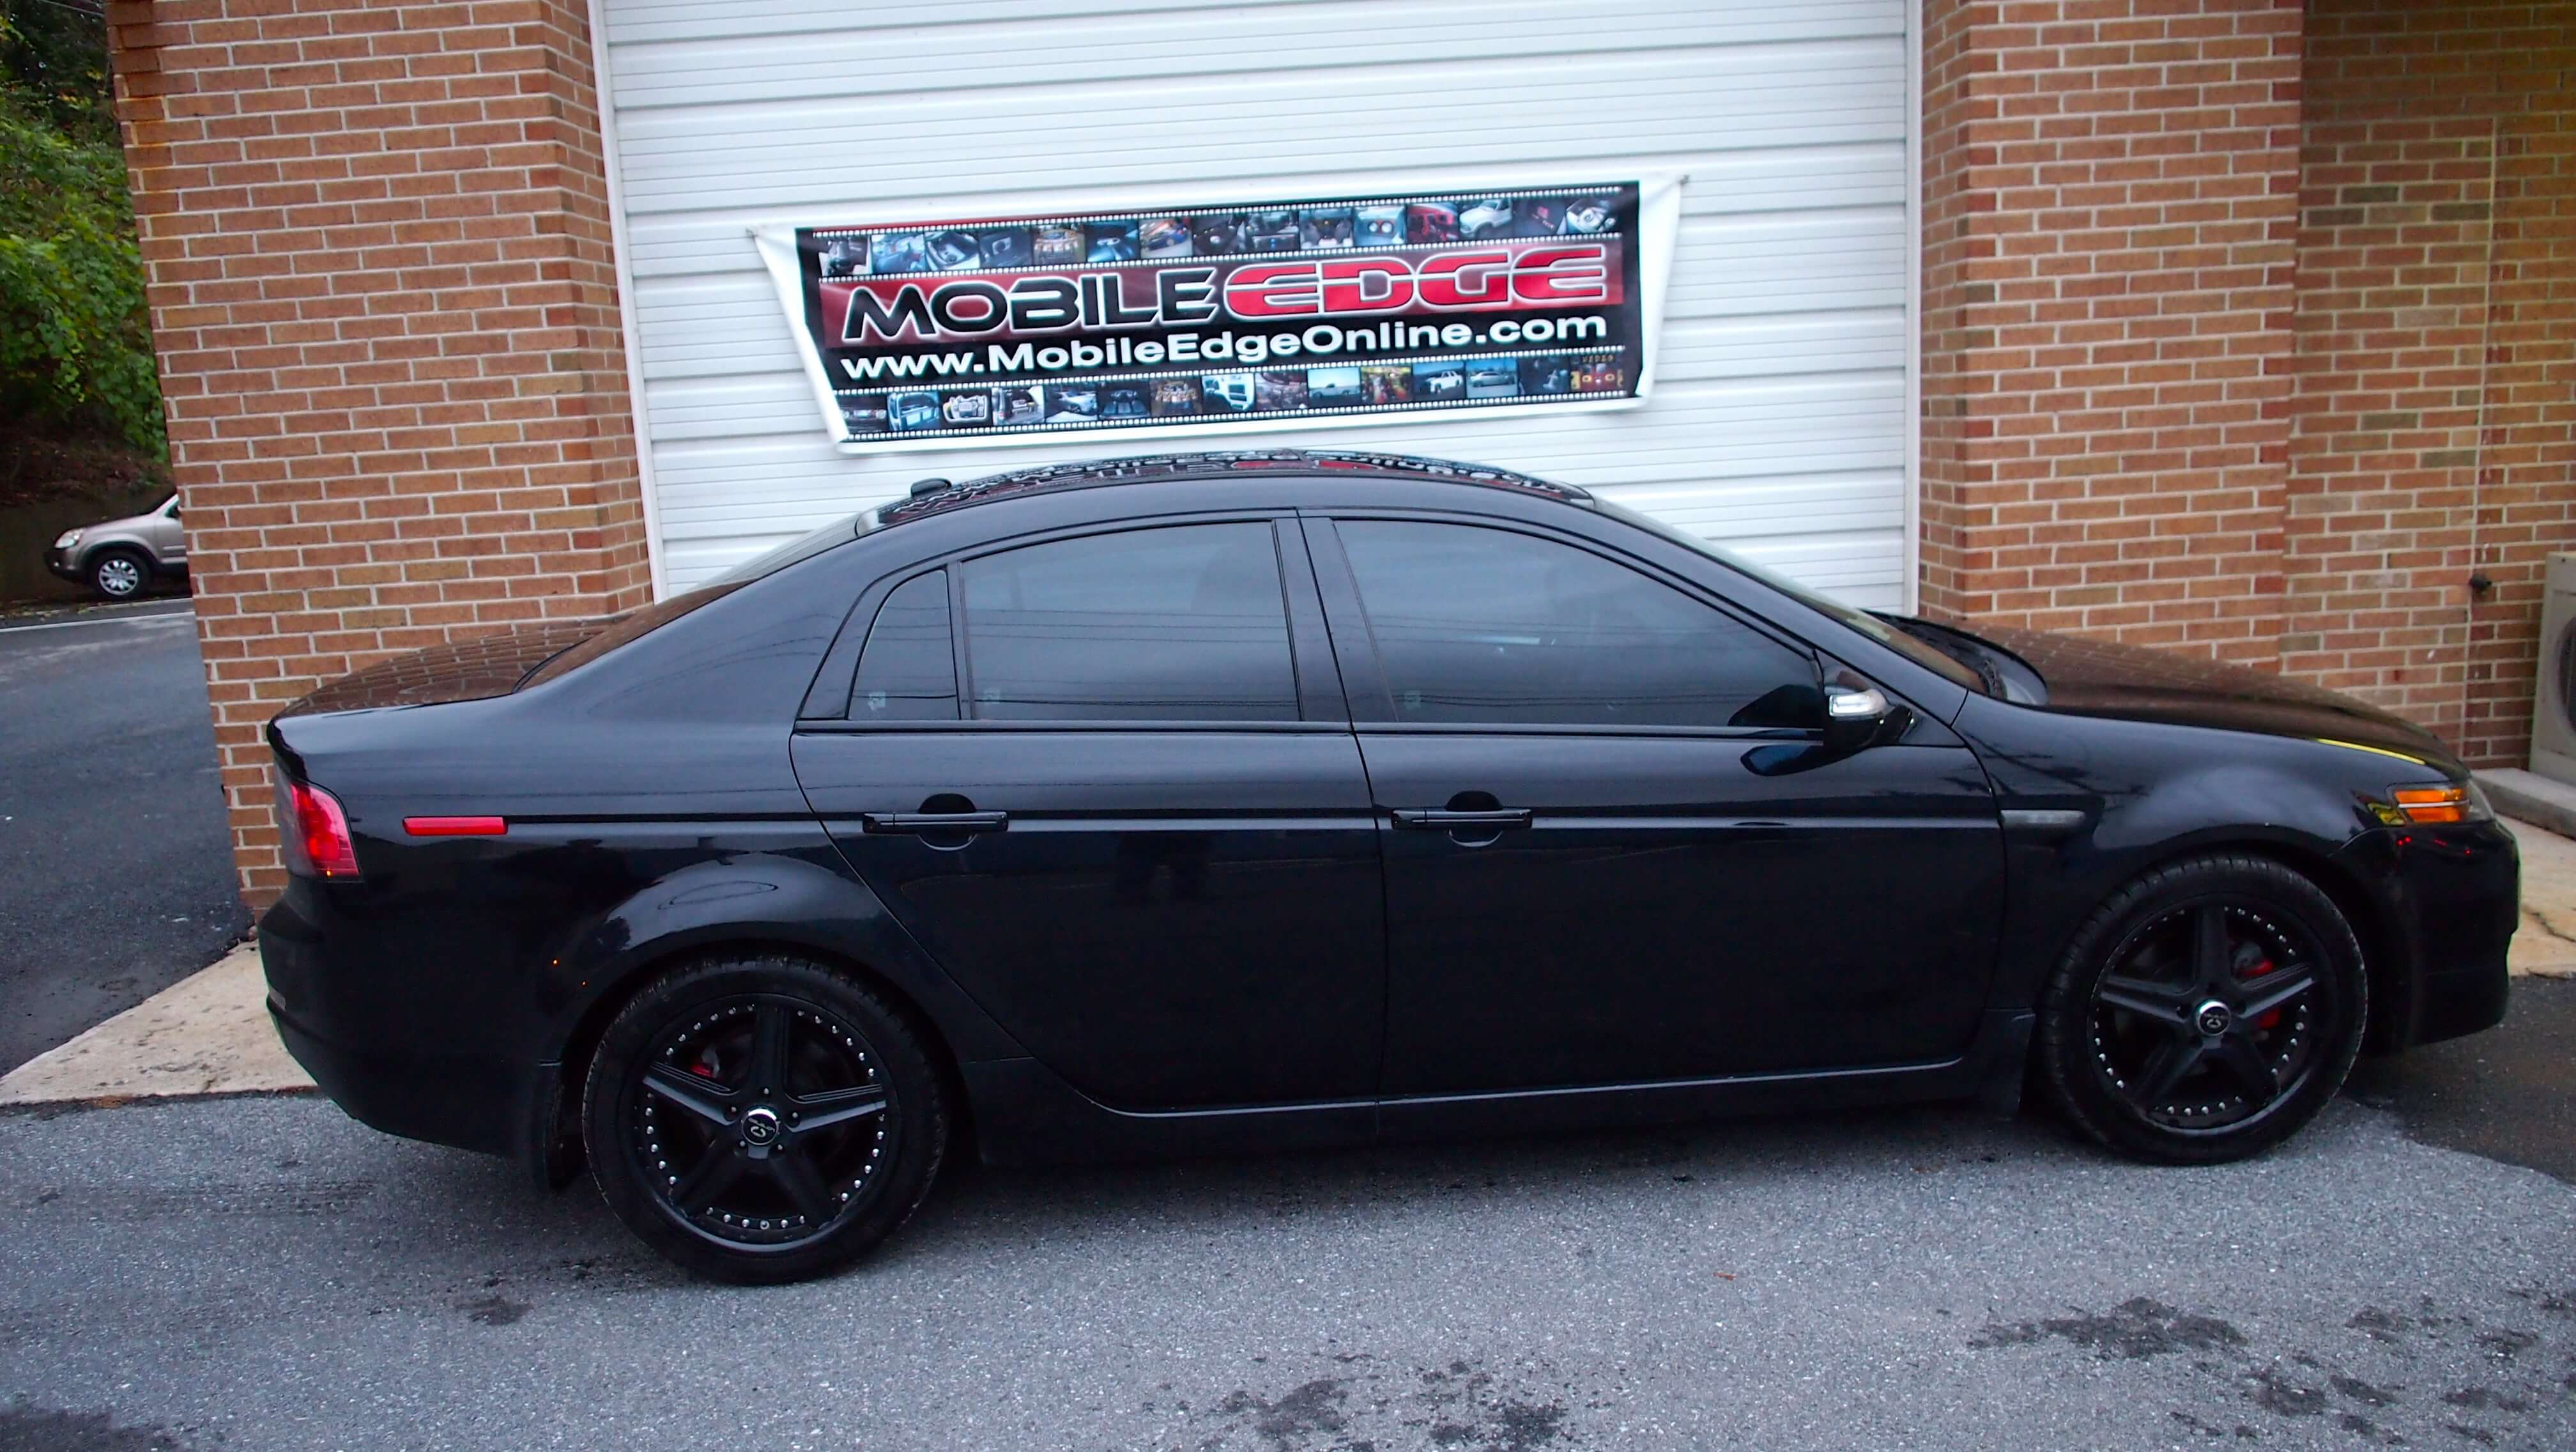 Acura Tl Gets Professional Window Tinting And Top Of The Line Remote 2012 Ford Focus Tinted Windows 2008 Tint